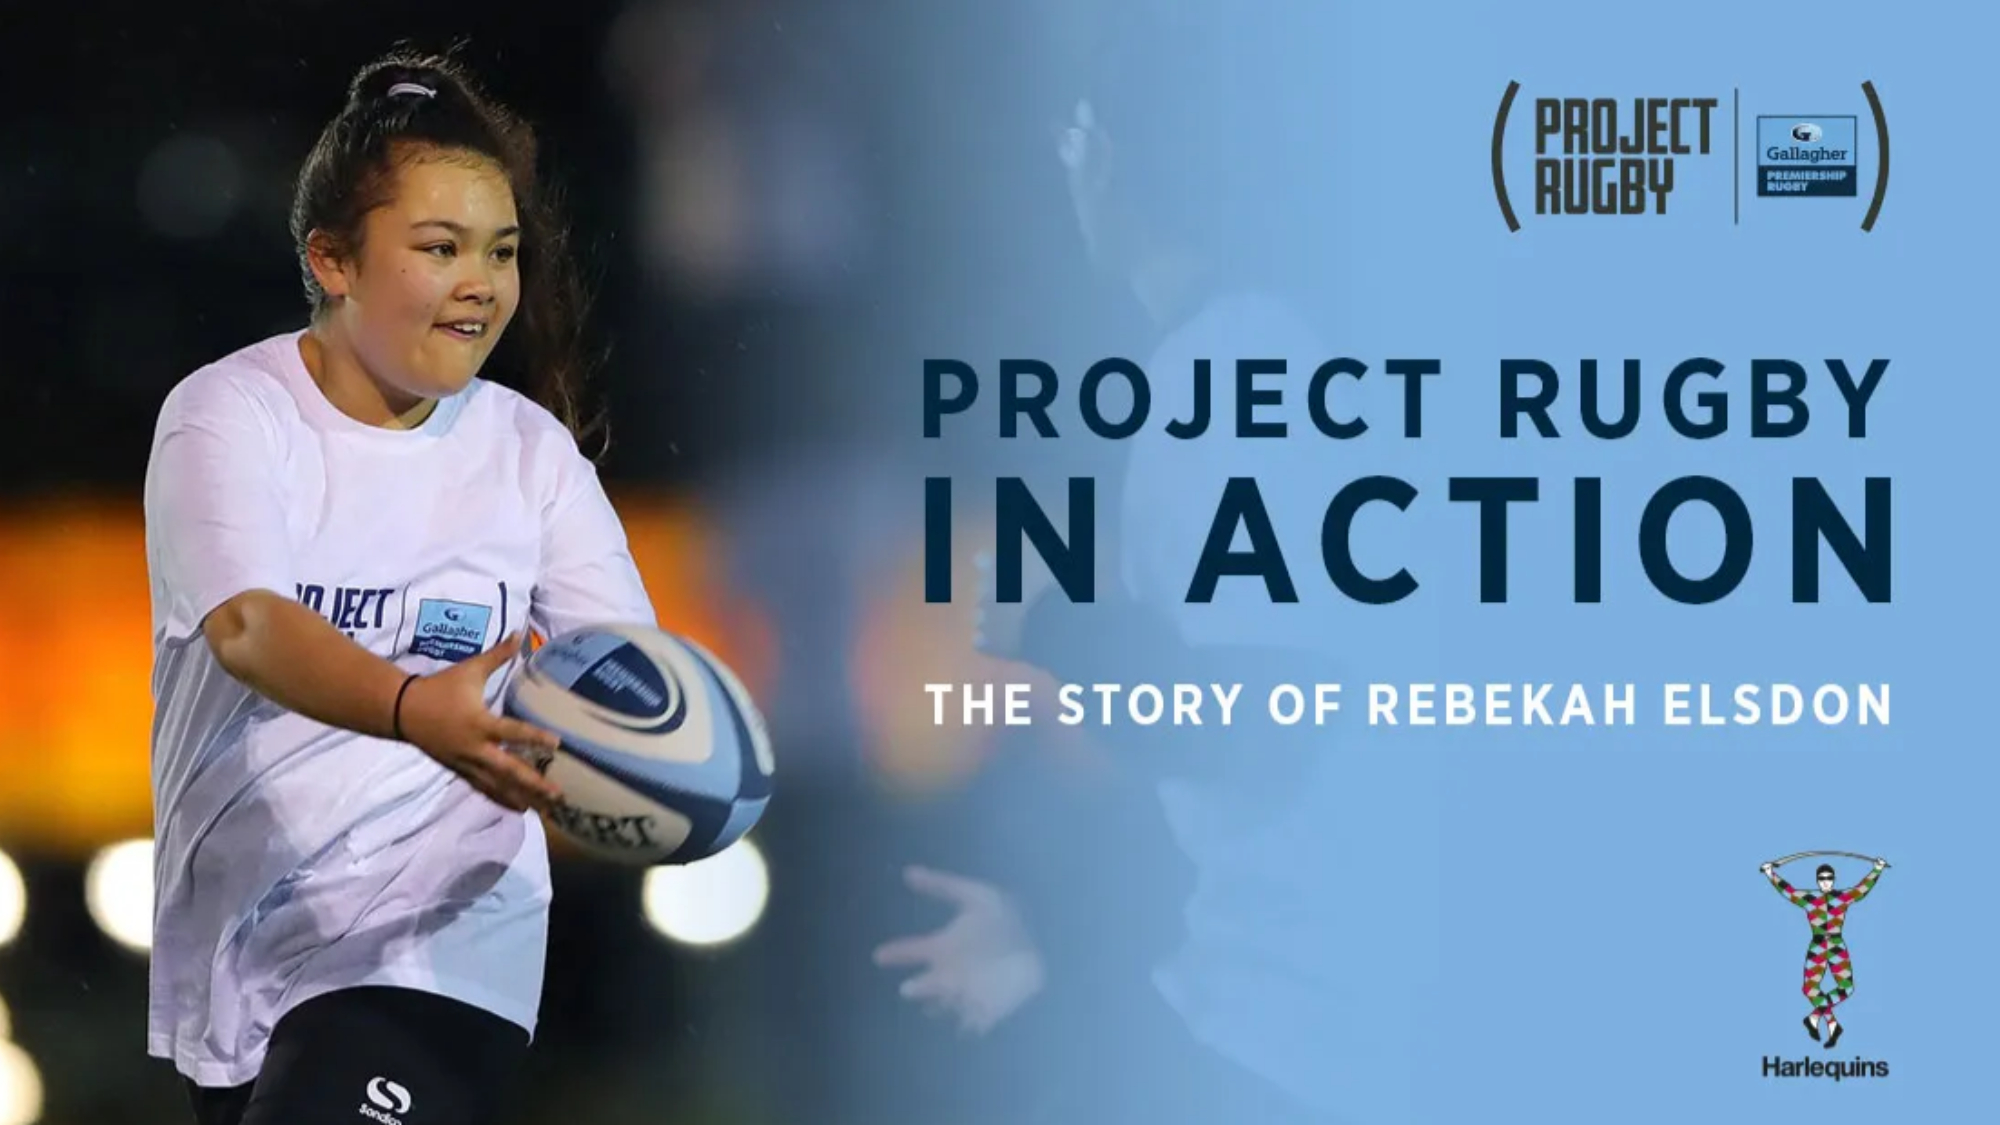 'Project Rugby gave me the confidence and courage to communicate': Rebekah's story